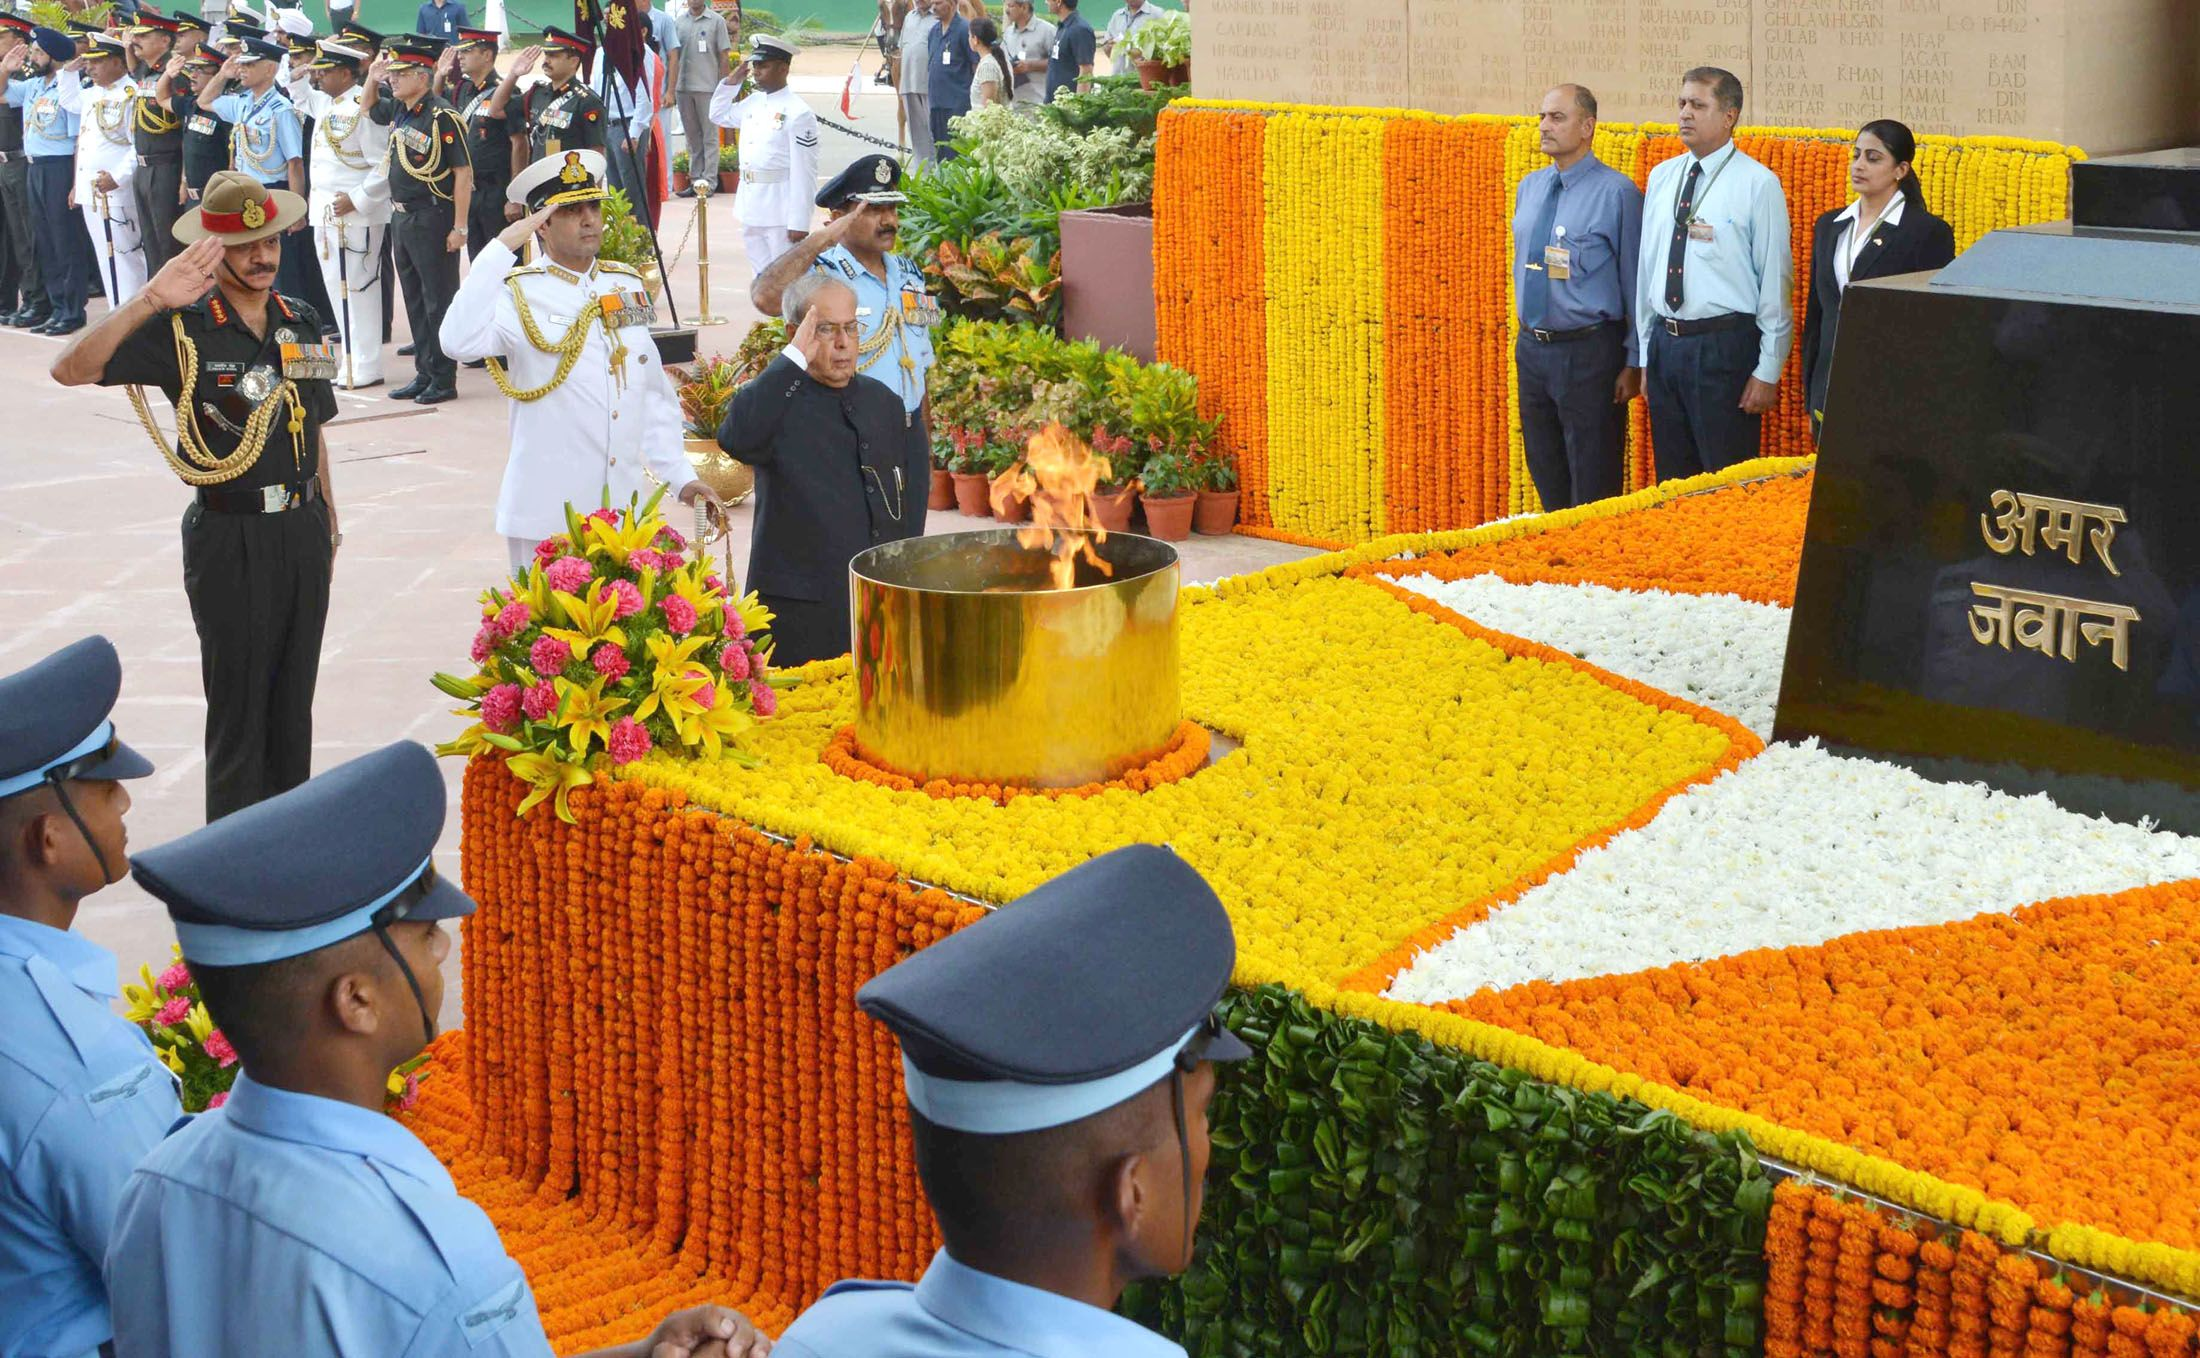 The Golden Jubilee of India's Victory in Indo-Pak War of 1965